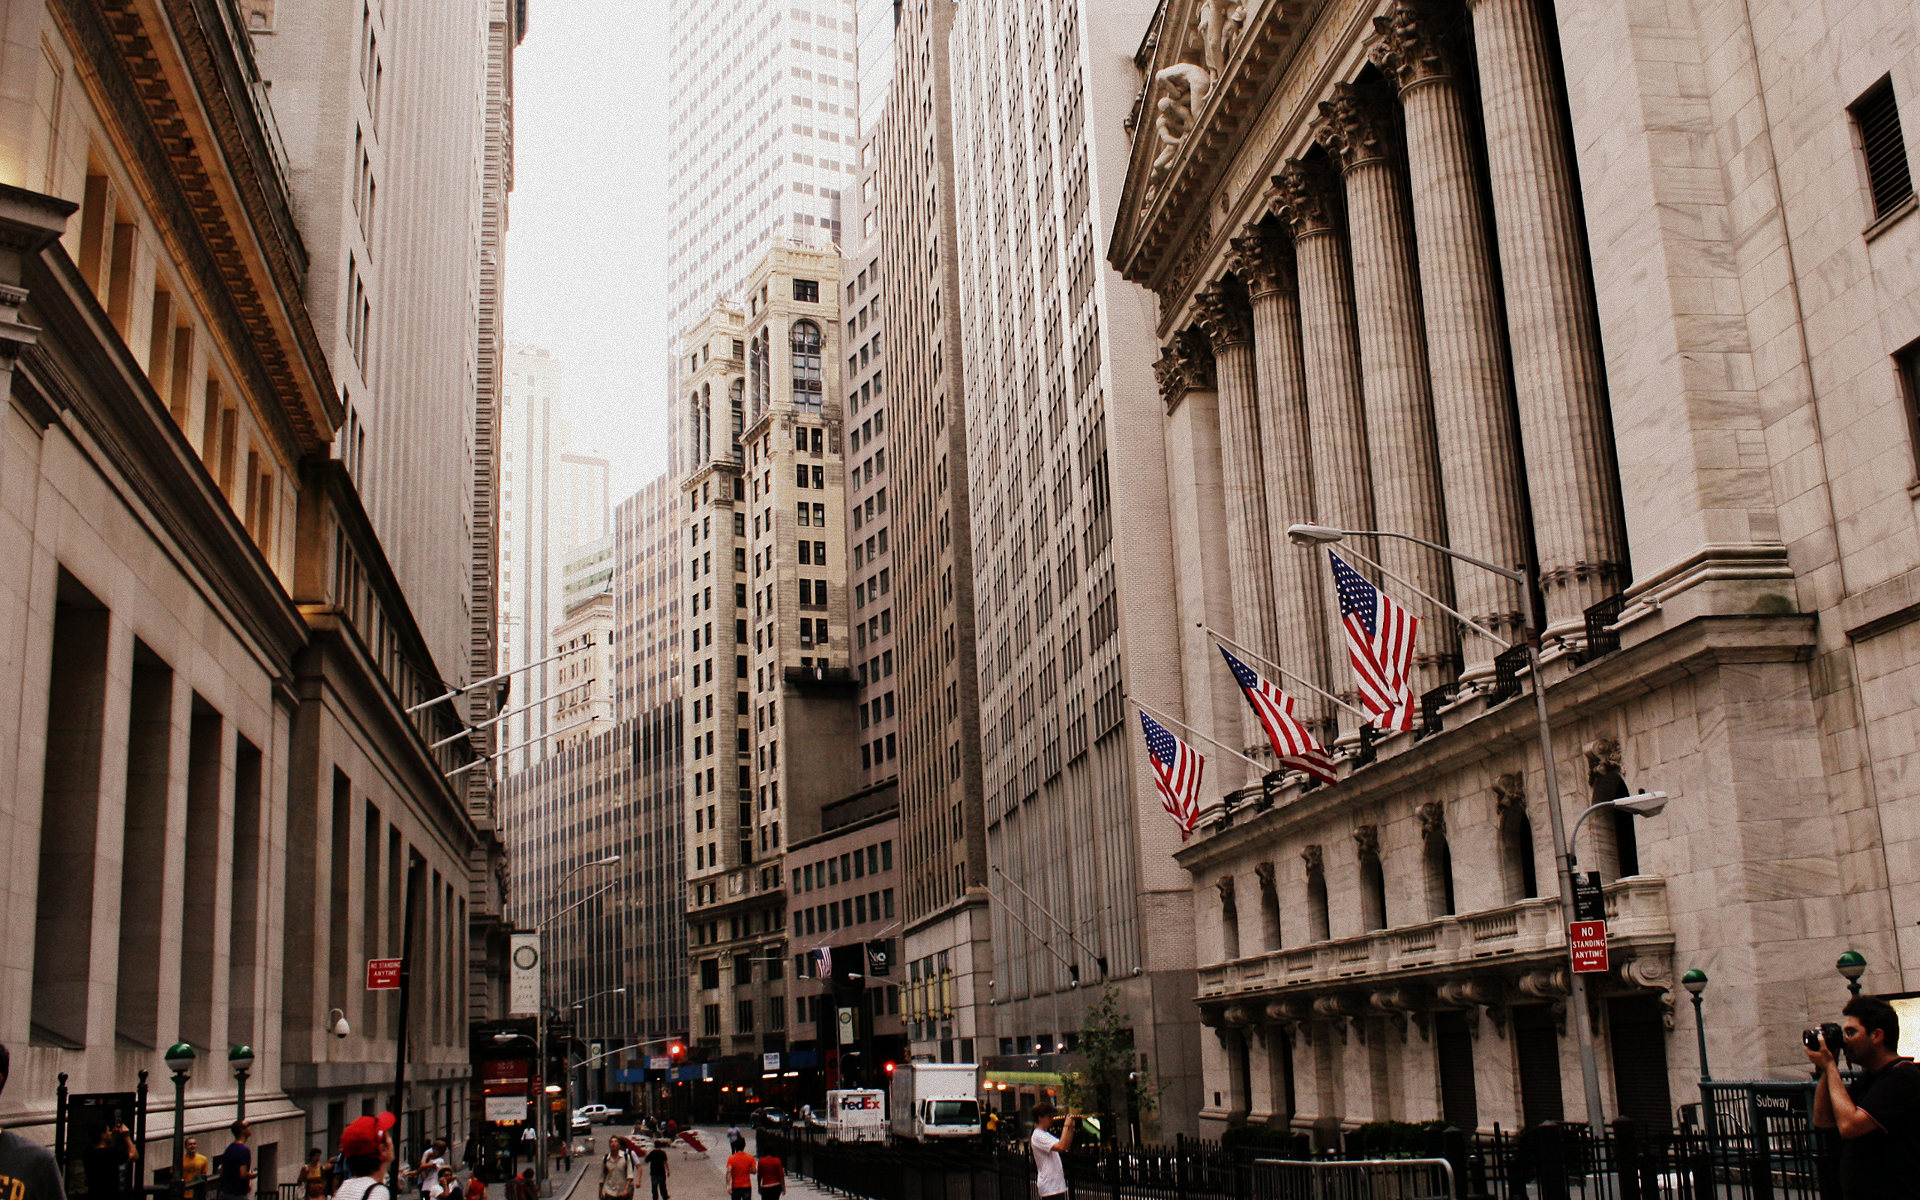 Wall Street indexes ended trading tentatively ahead of G20 summit